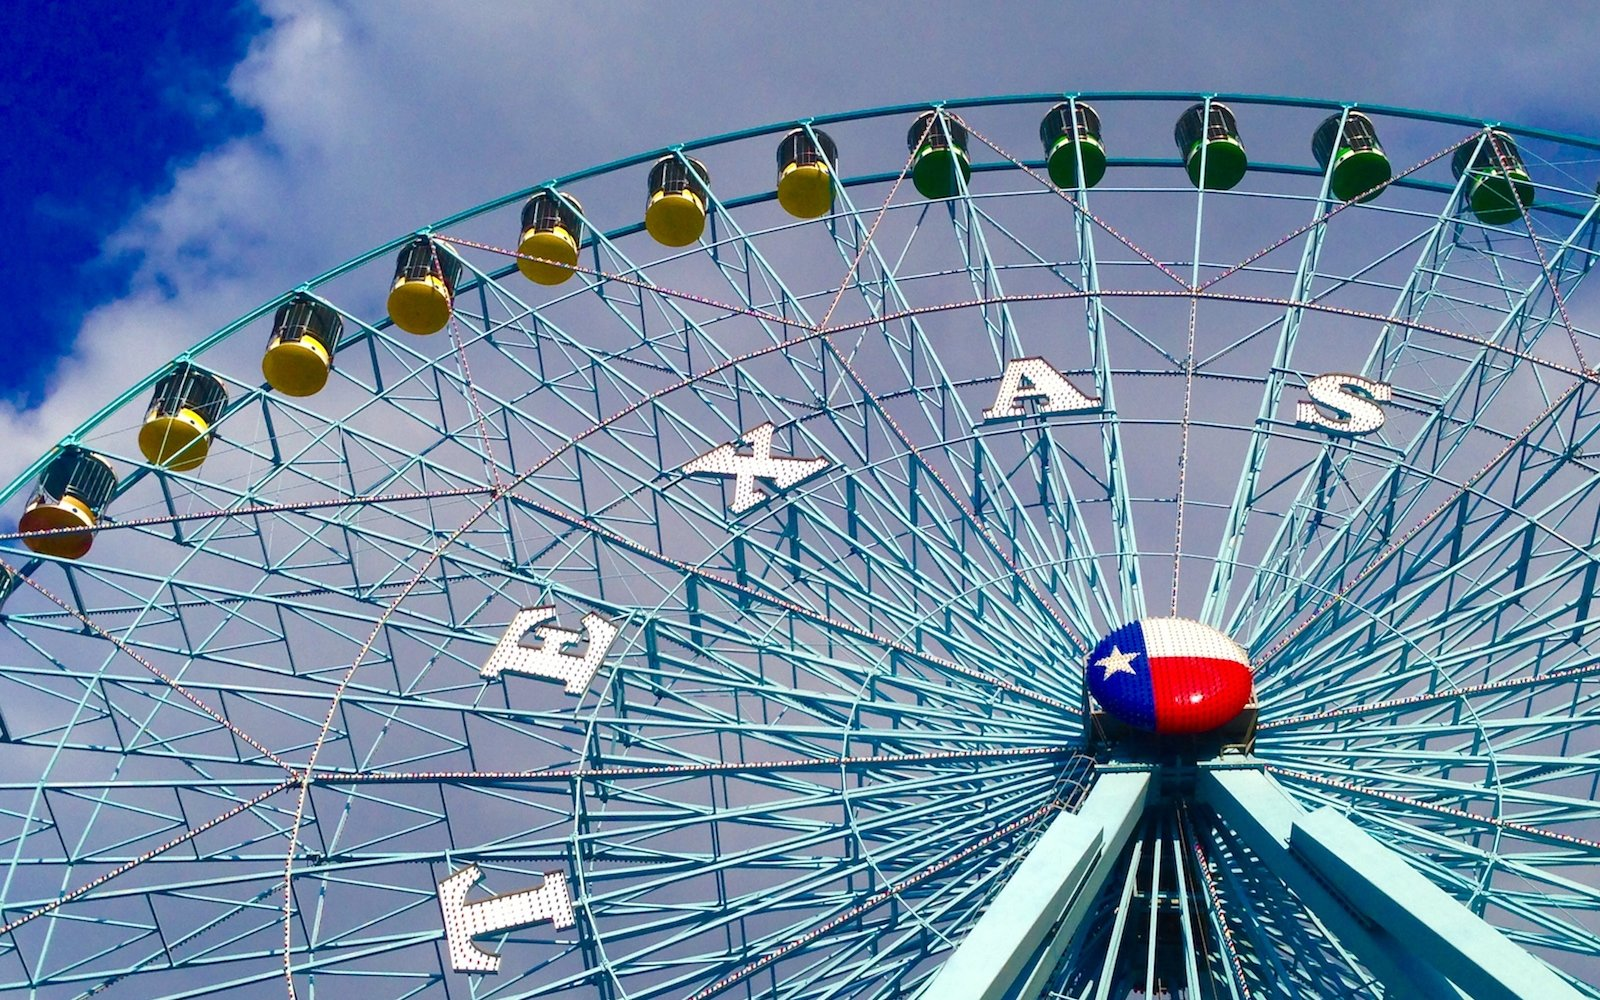 Texas Star Ferris wheel. Texas State Fair. Dallas Texas